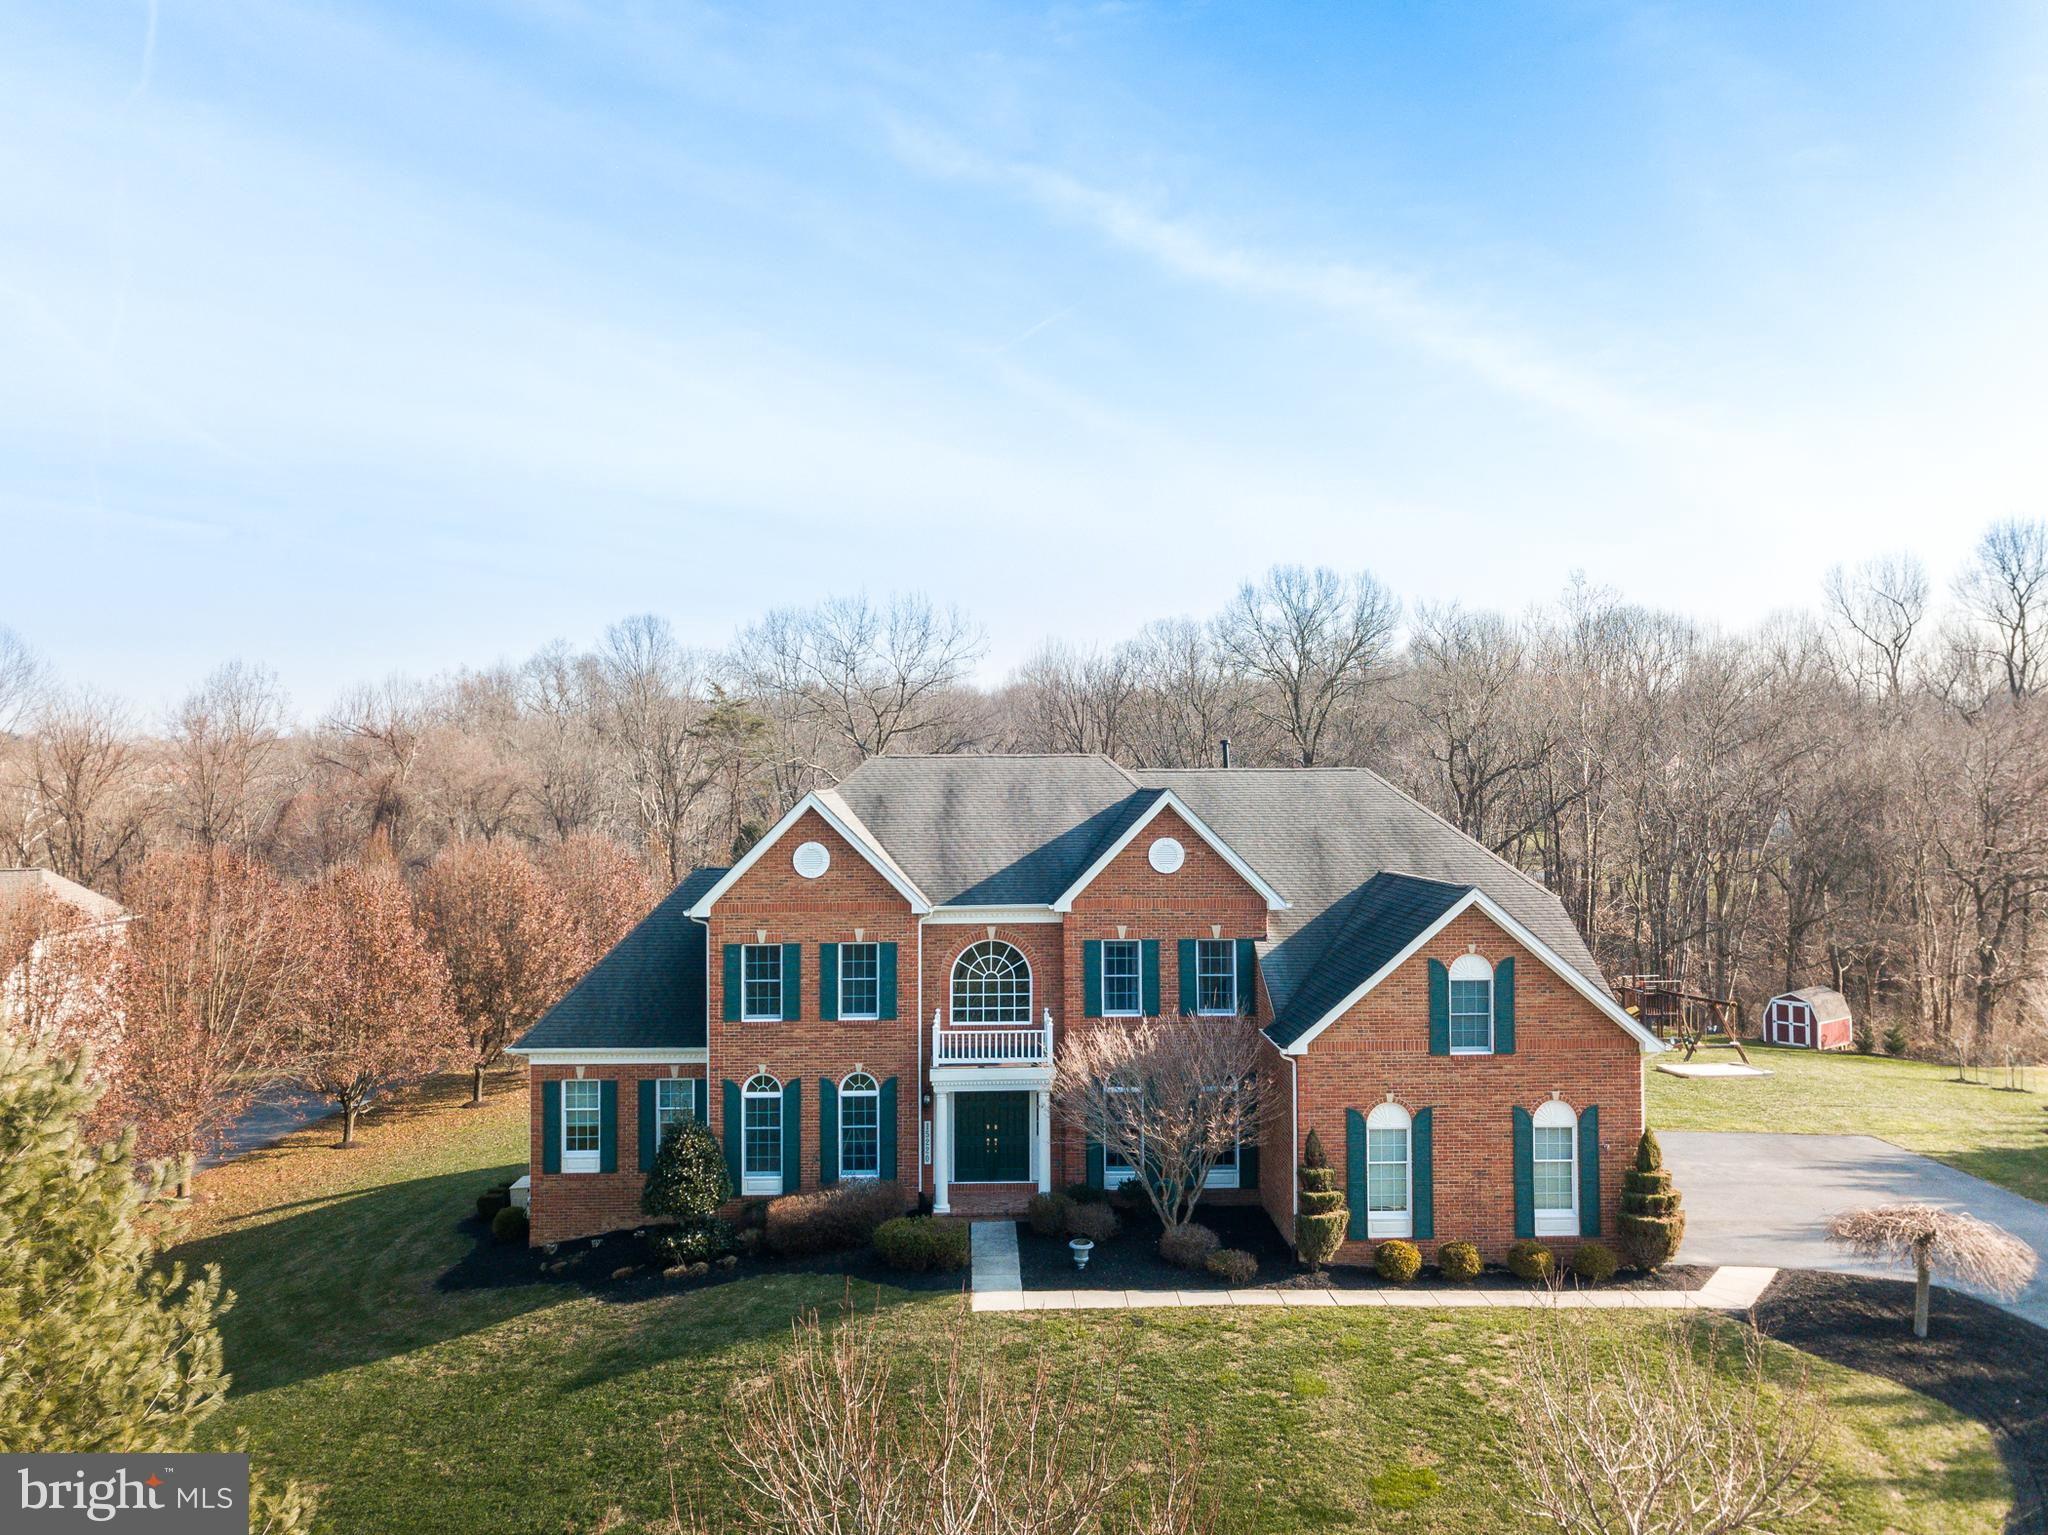 15220 OPEN LAND COURT, DAYTON, MD 21036